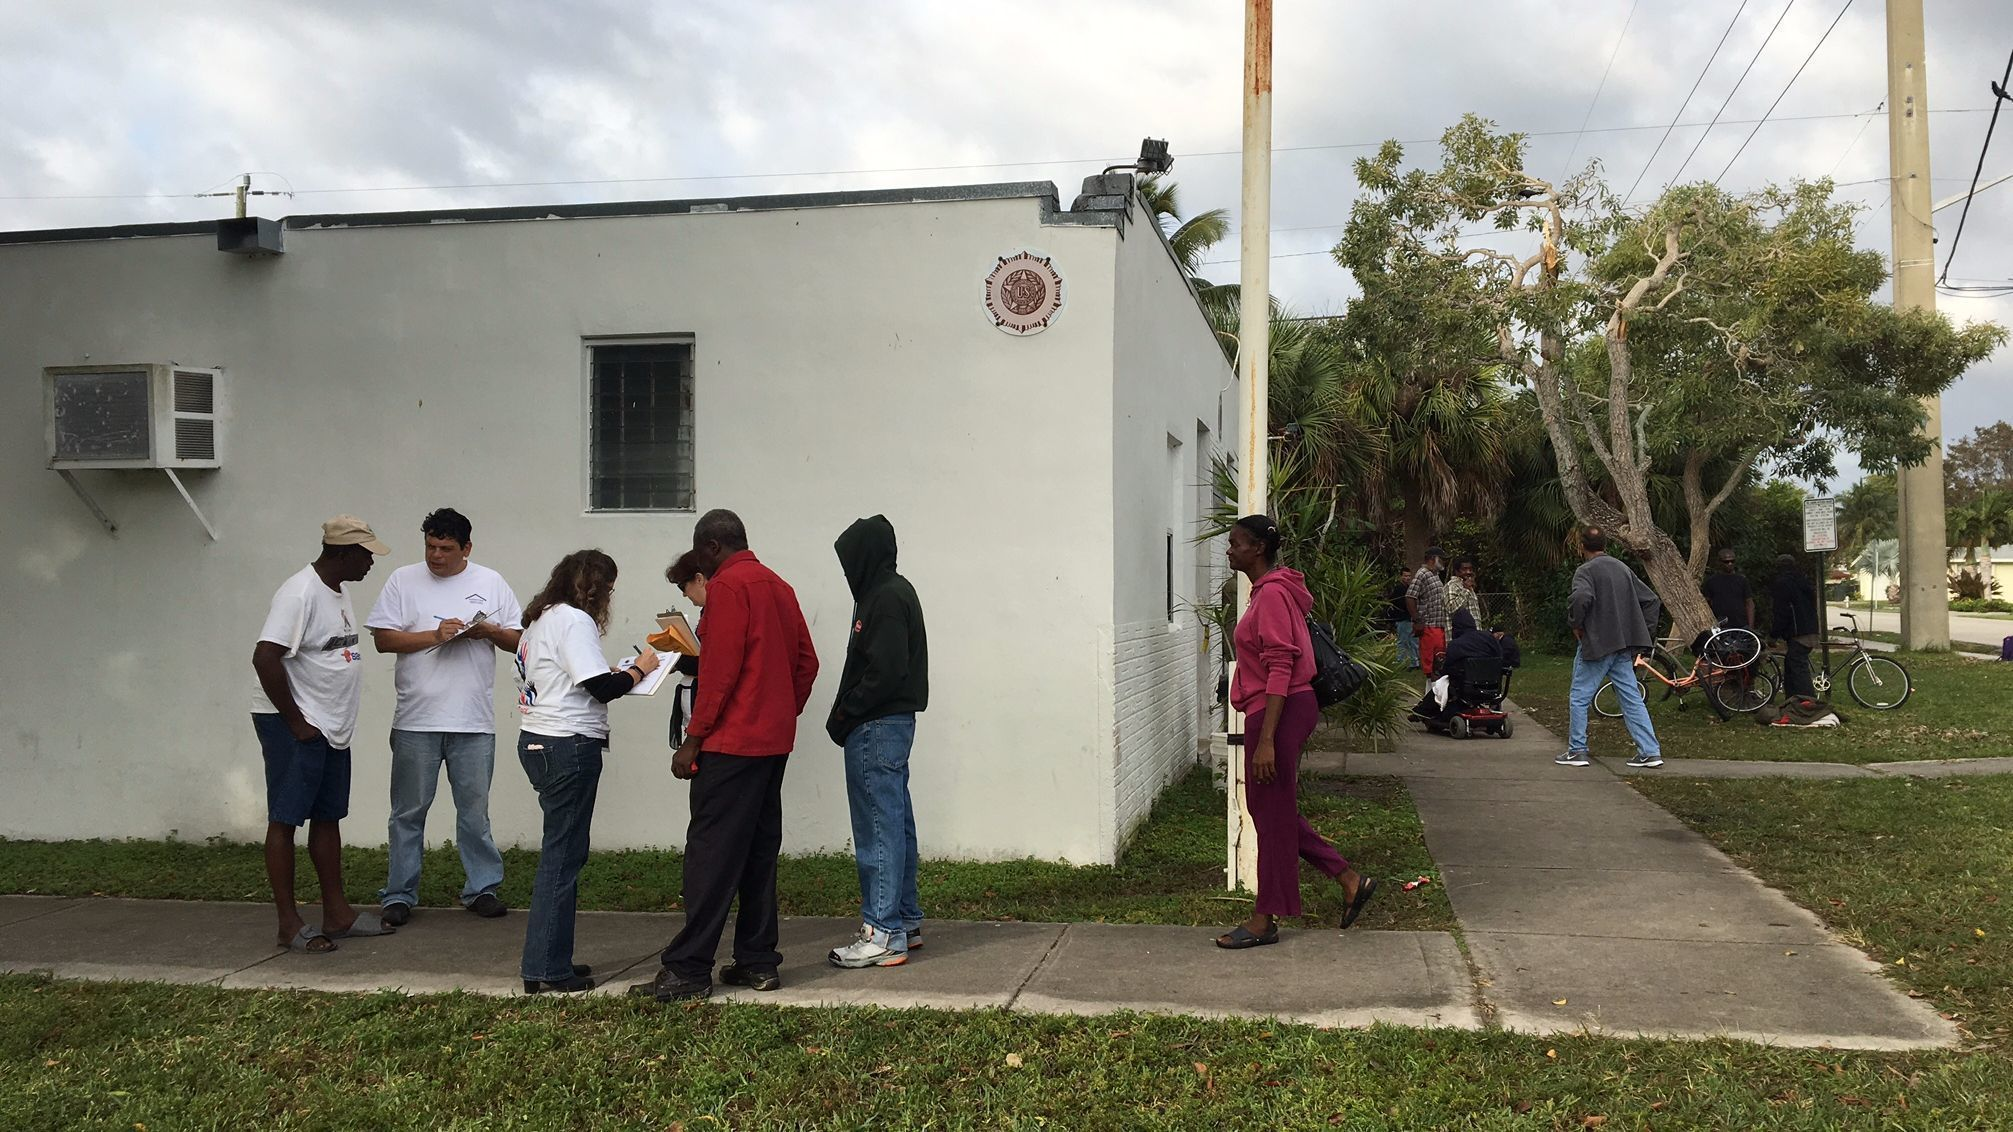 Delray Beach Soup Kitchen Forced To Move Out Amid Neighborsu0027 Complaints    Sun Sentinel